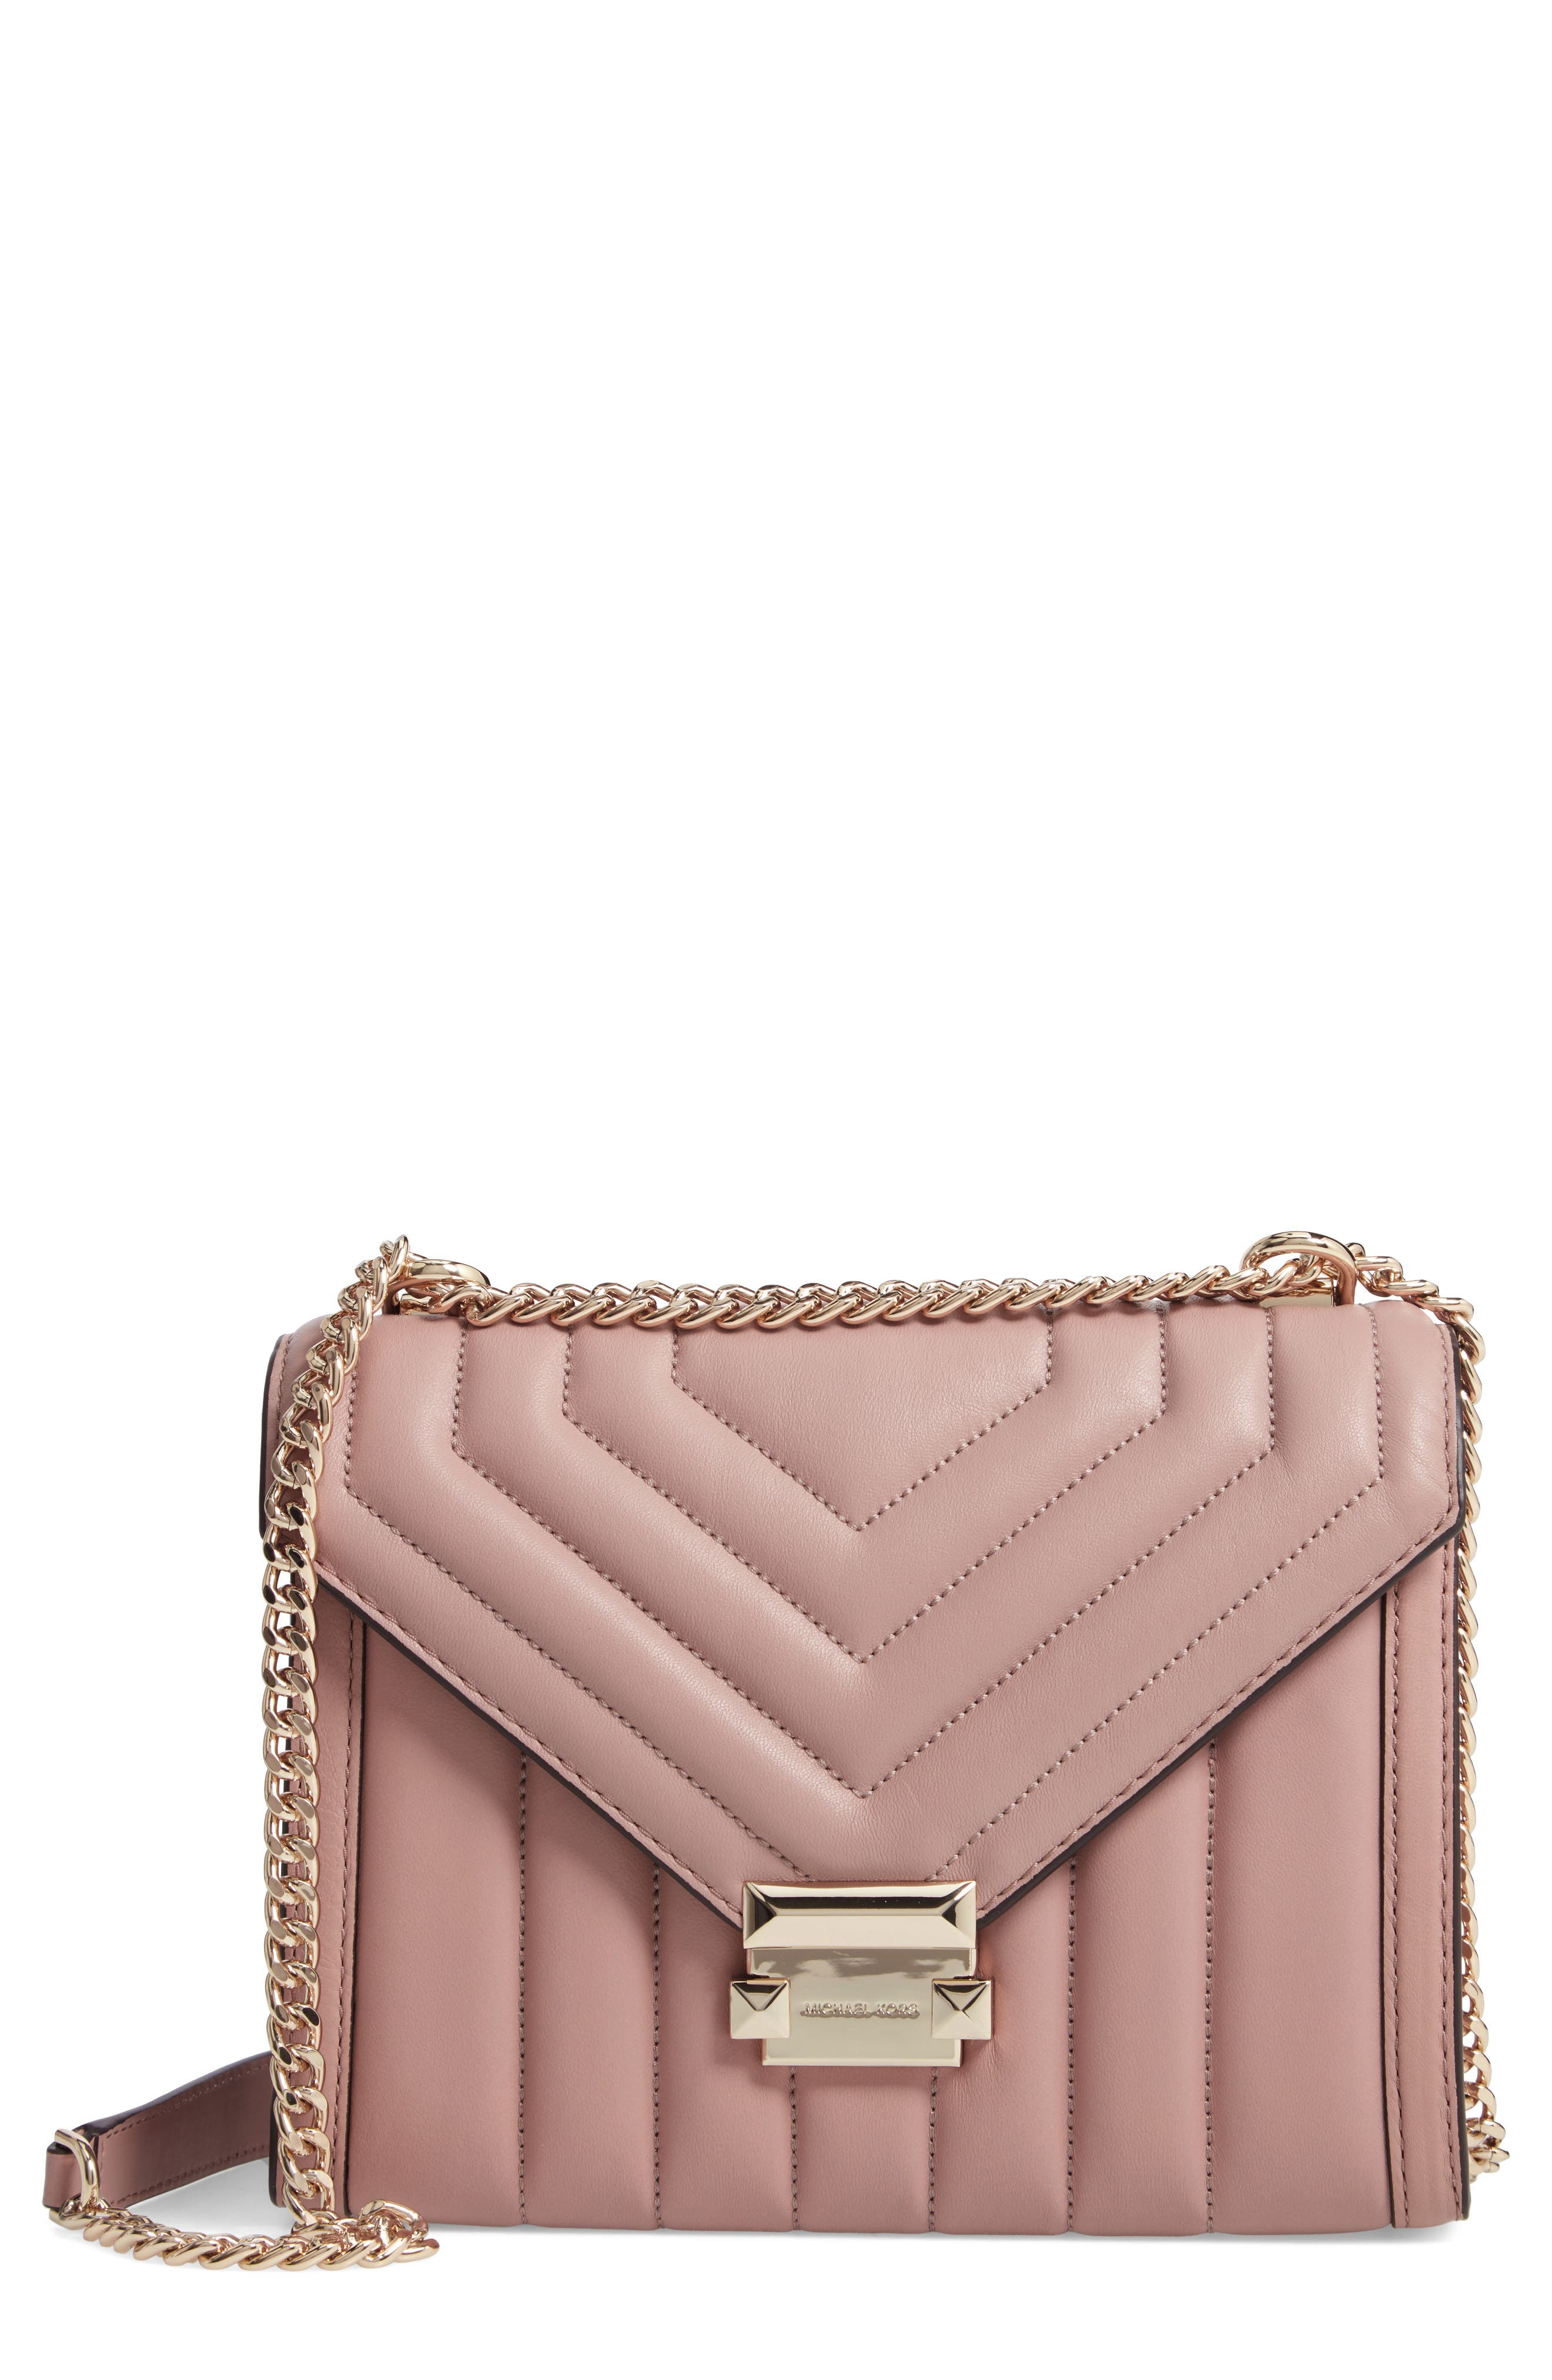 Whitney Large Quilted Leather Shoulder Bag in Fawn